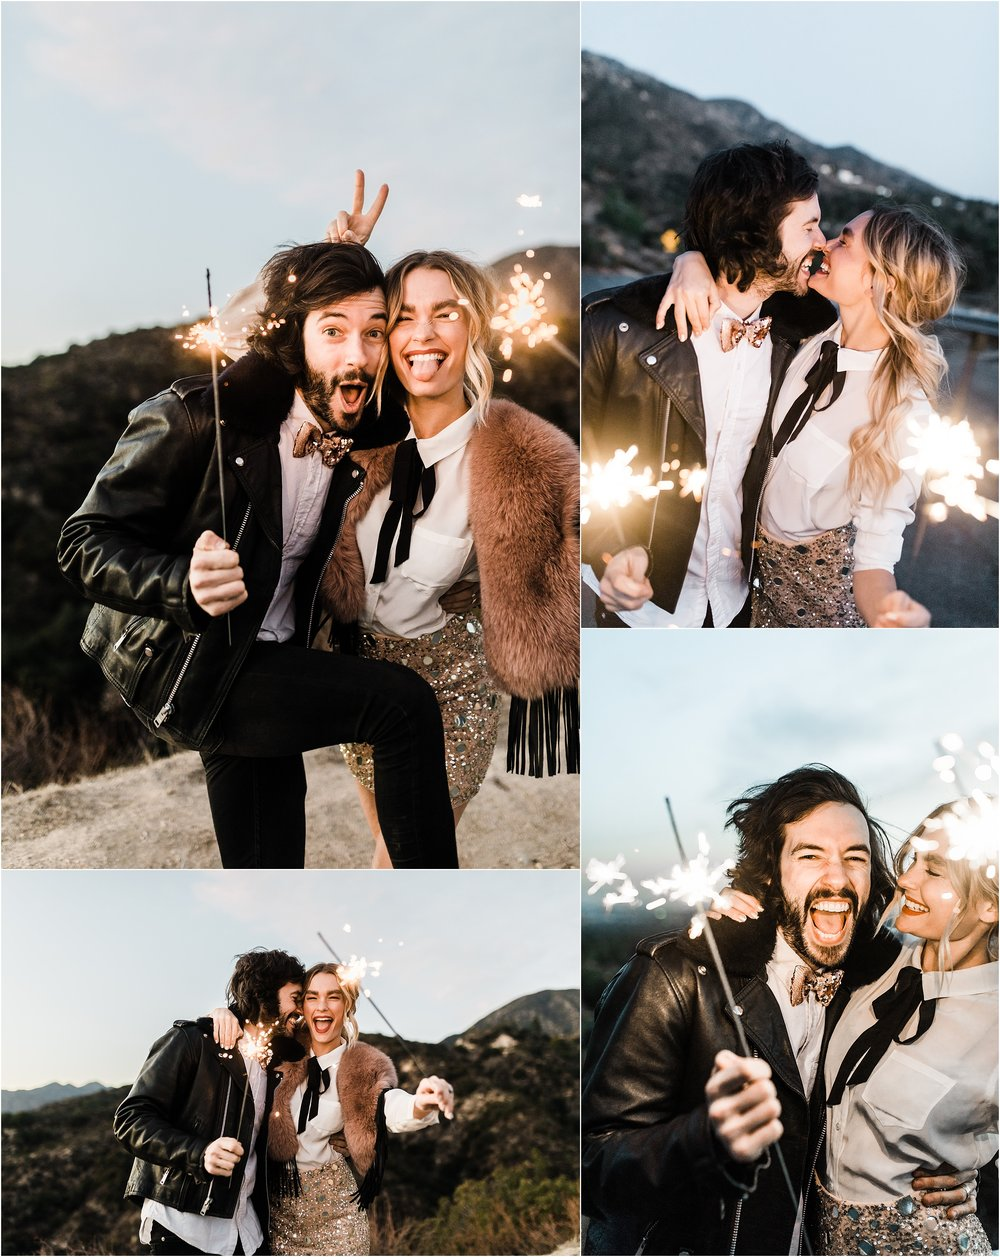 Spice-Up-Your-Engagement-Shoot-With-These-6-Super-Fun-Props-Inspiration-Clarisse-Rae-Southern-California-Wedding-Photographer2.jpg